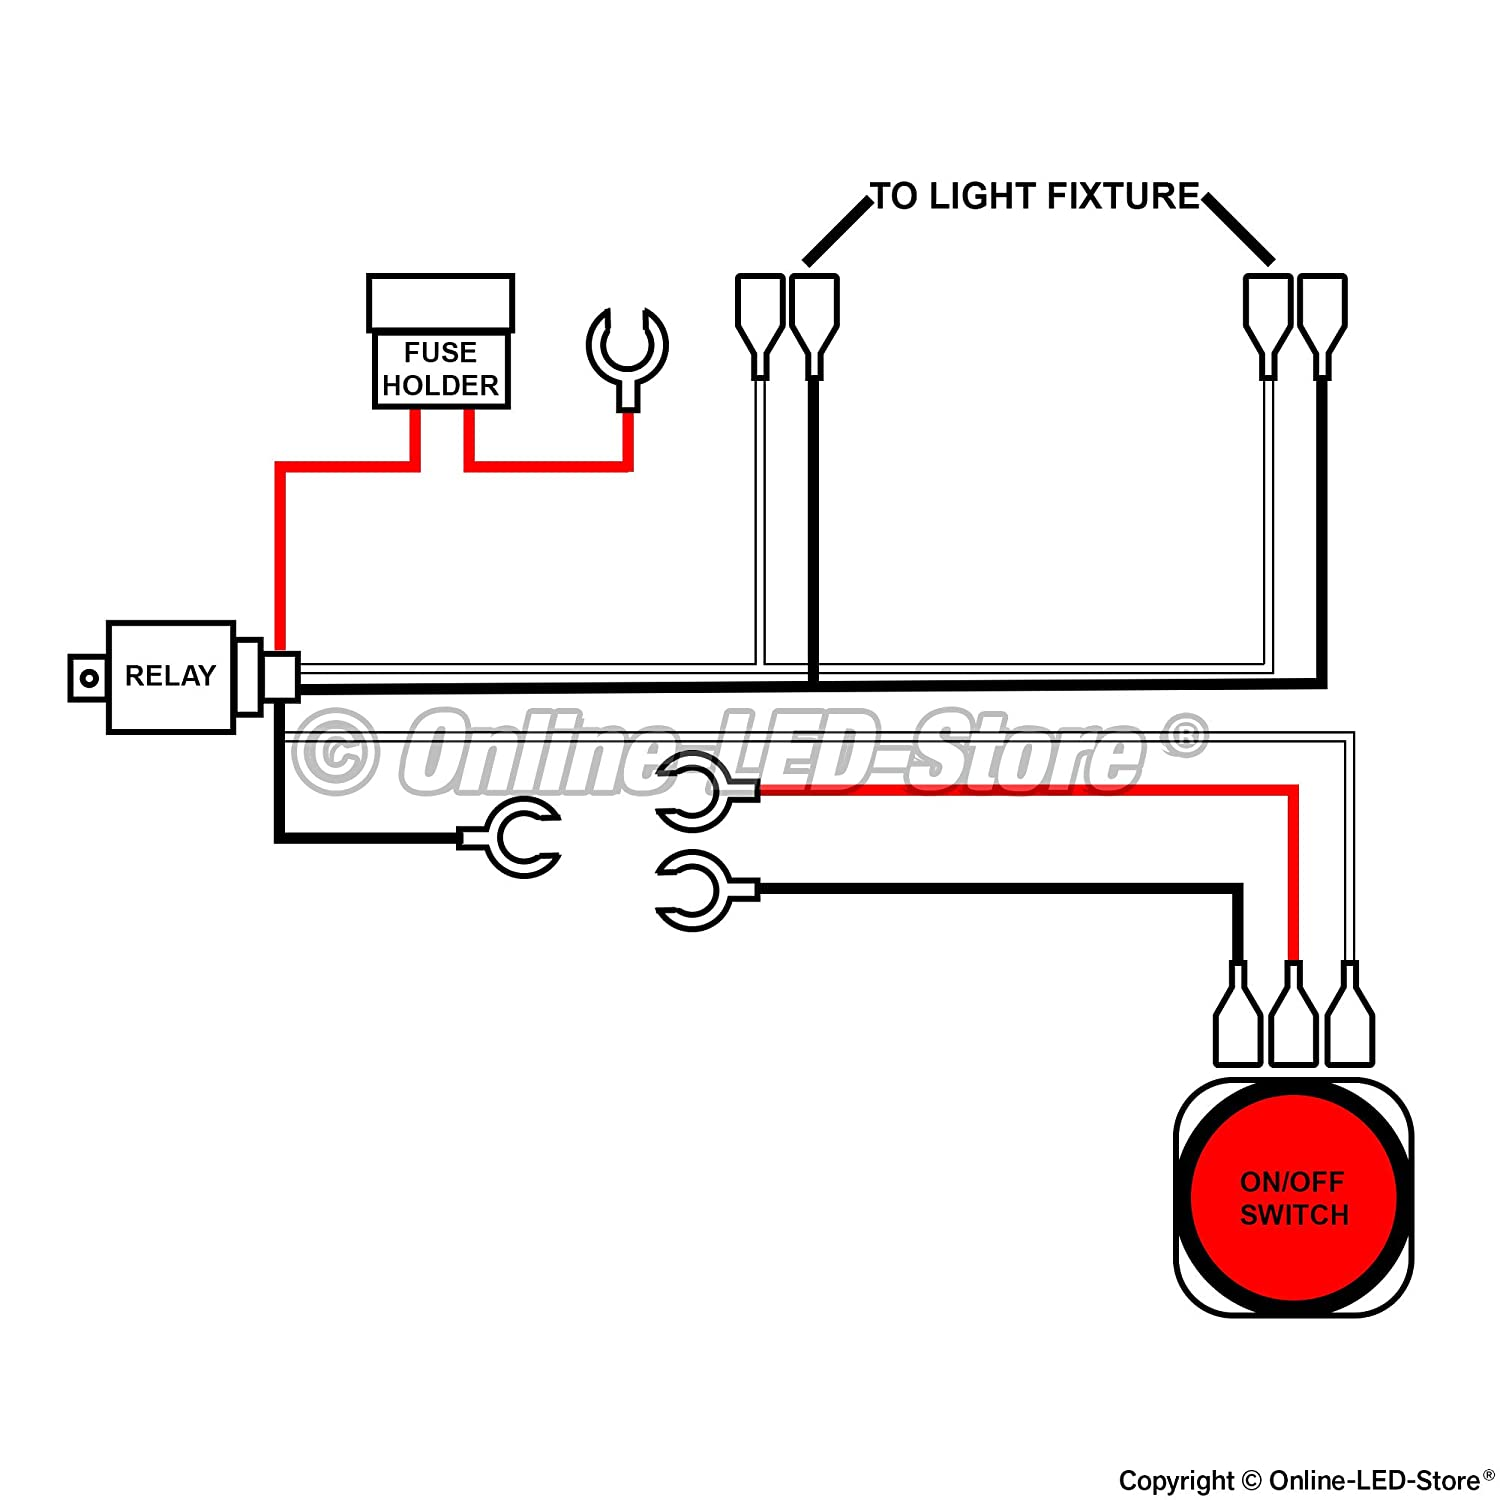 716CShdU1oL._SL1500_ nilight wiring diagram 12v rocker switch wiring diagram \u2022 free nilight led wiring diagram at mifinder.co